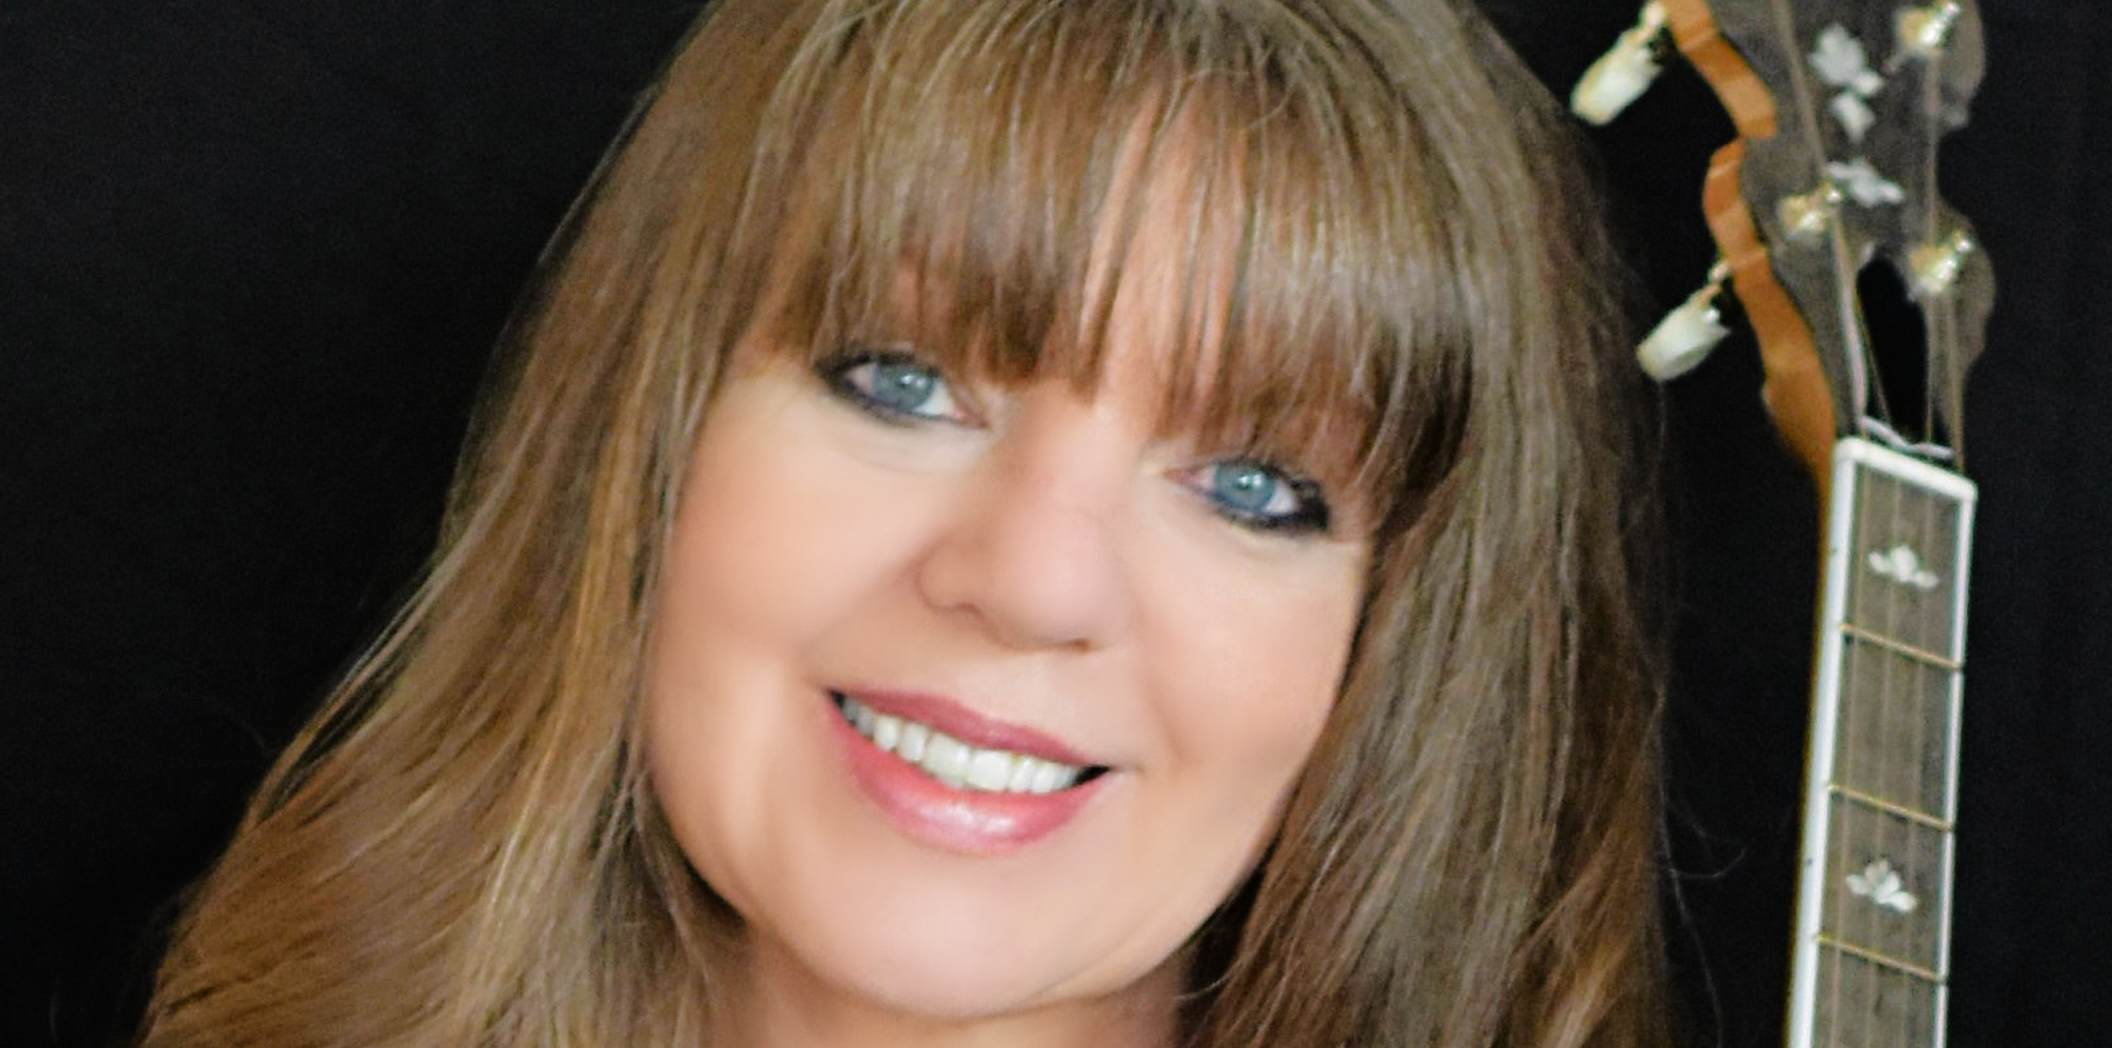 Cindy Cook, Co-Owner, Director of Marketing and Education, The Candyman Strings & Things